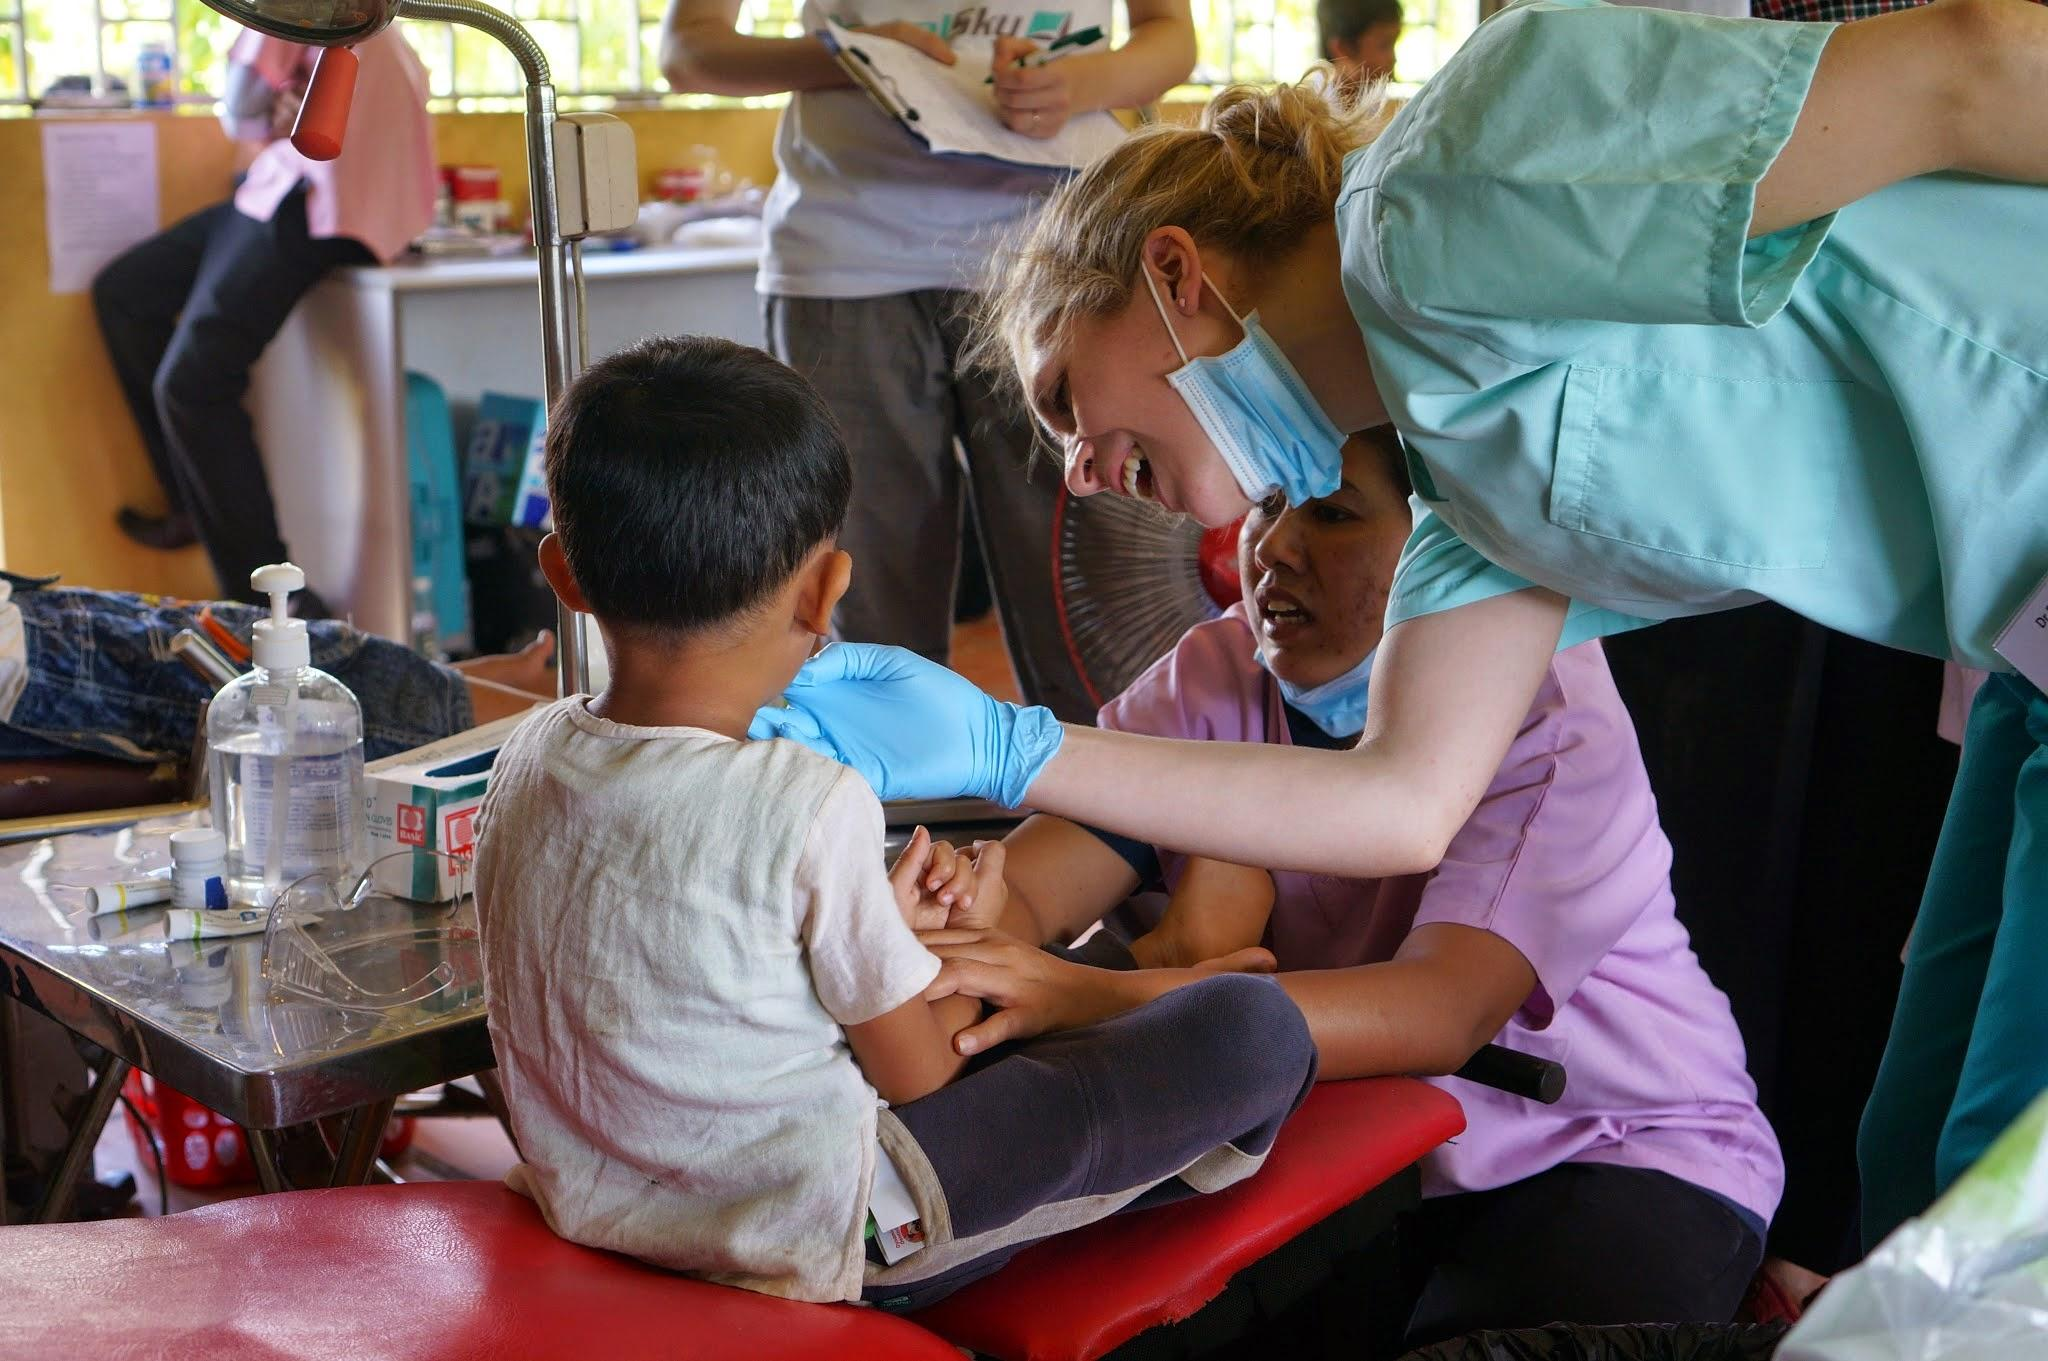 Bethan Hatton at work in Cambodia